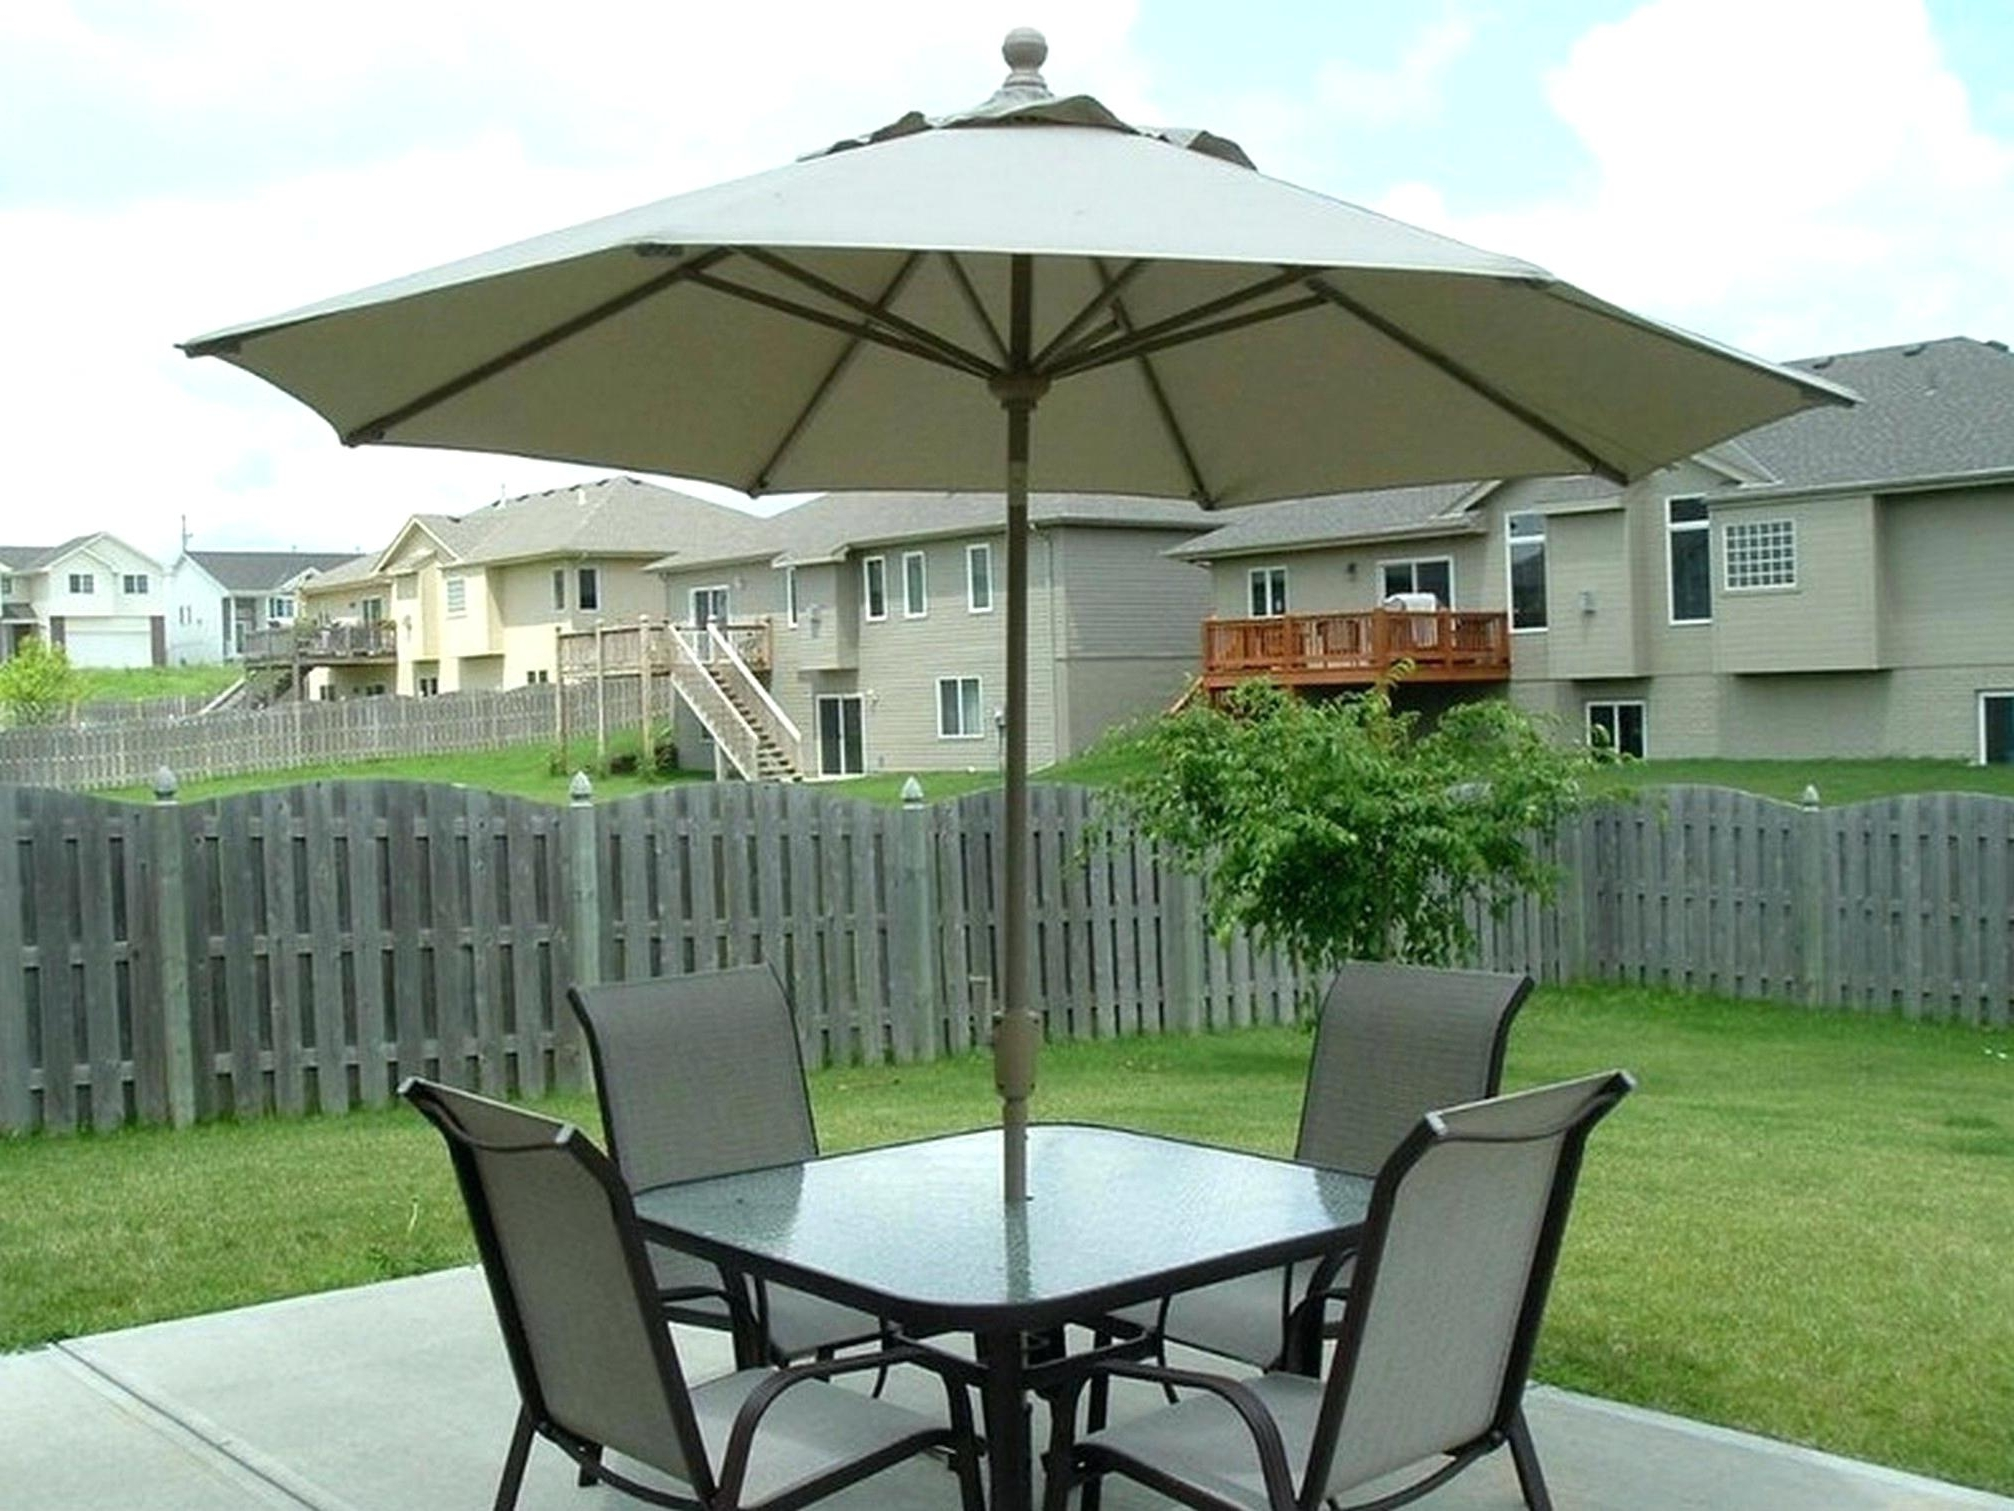 Patio Sets With Umbrellas Within Newest Outdoor Furniture Umbrellas 9 Ft Wood Commercial Grade Patio (View 15 of 20)